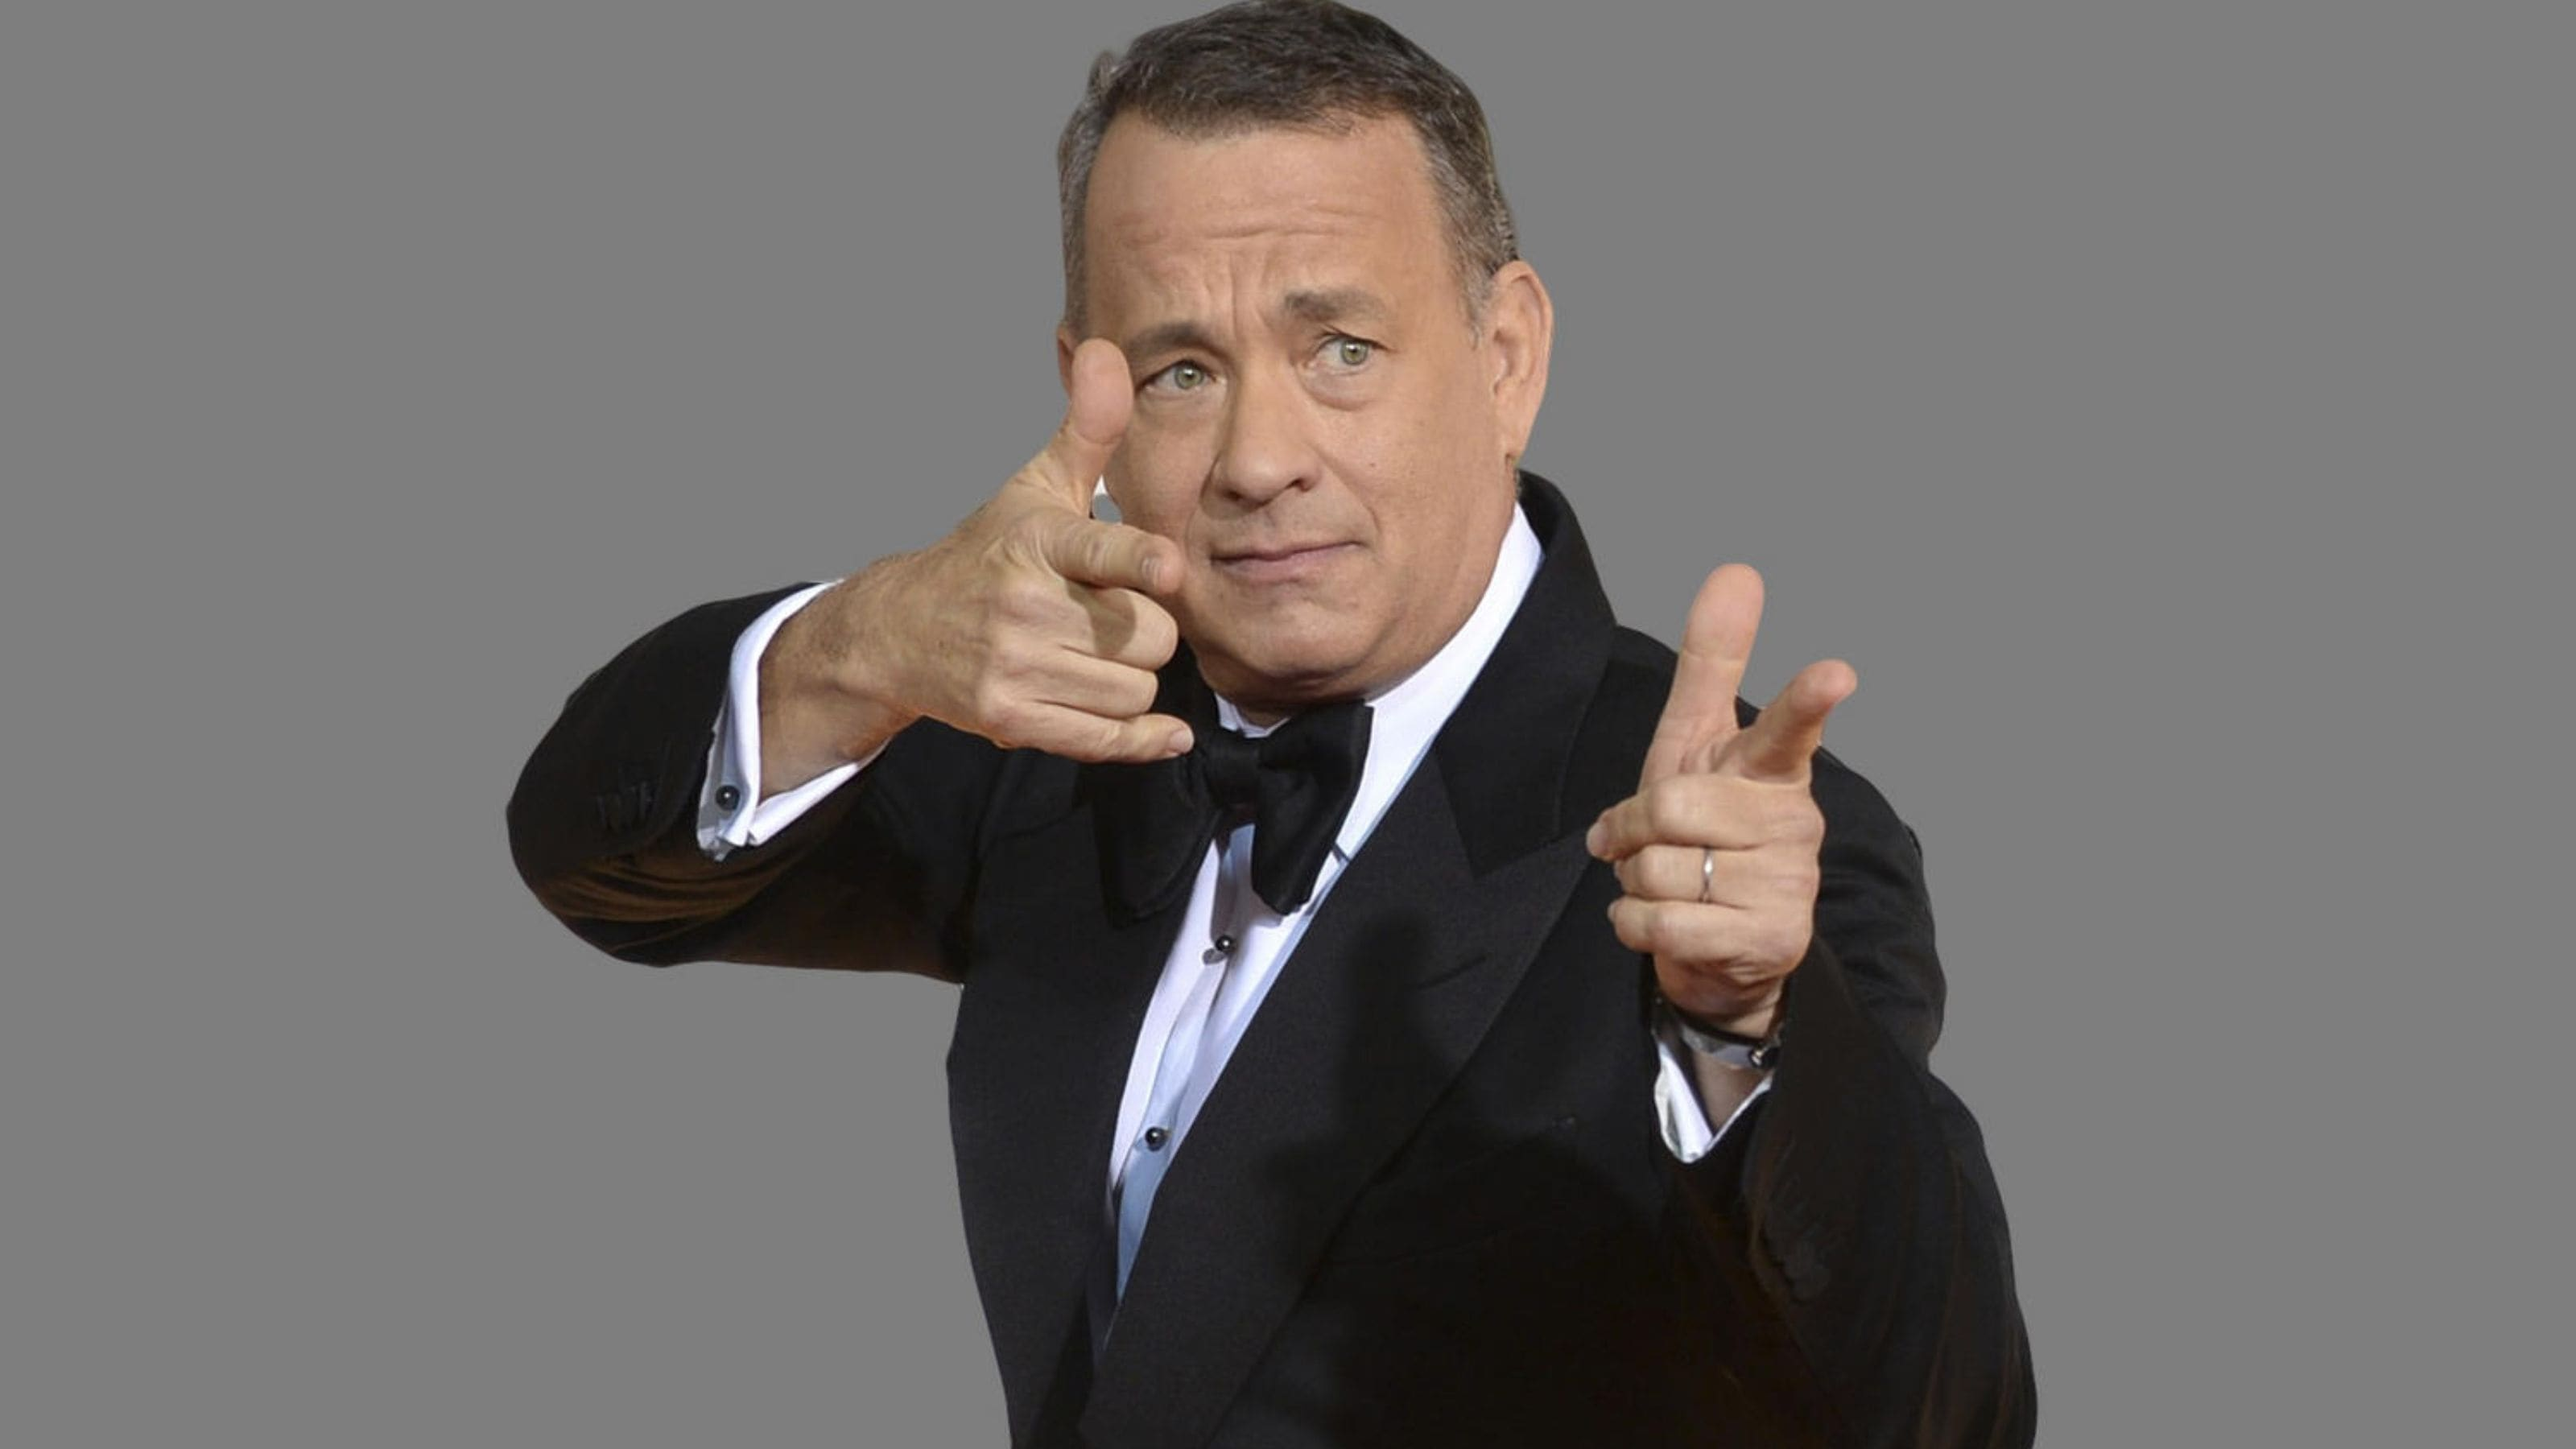 Tom Hanks HQ wallpapers